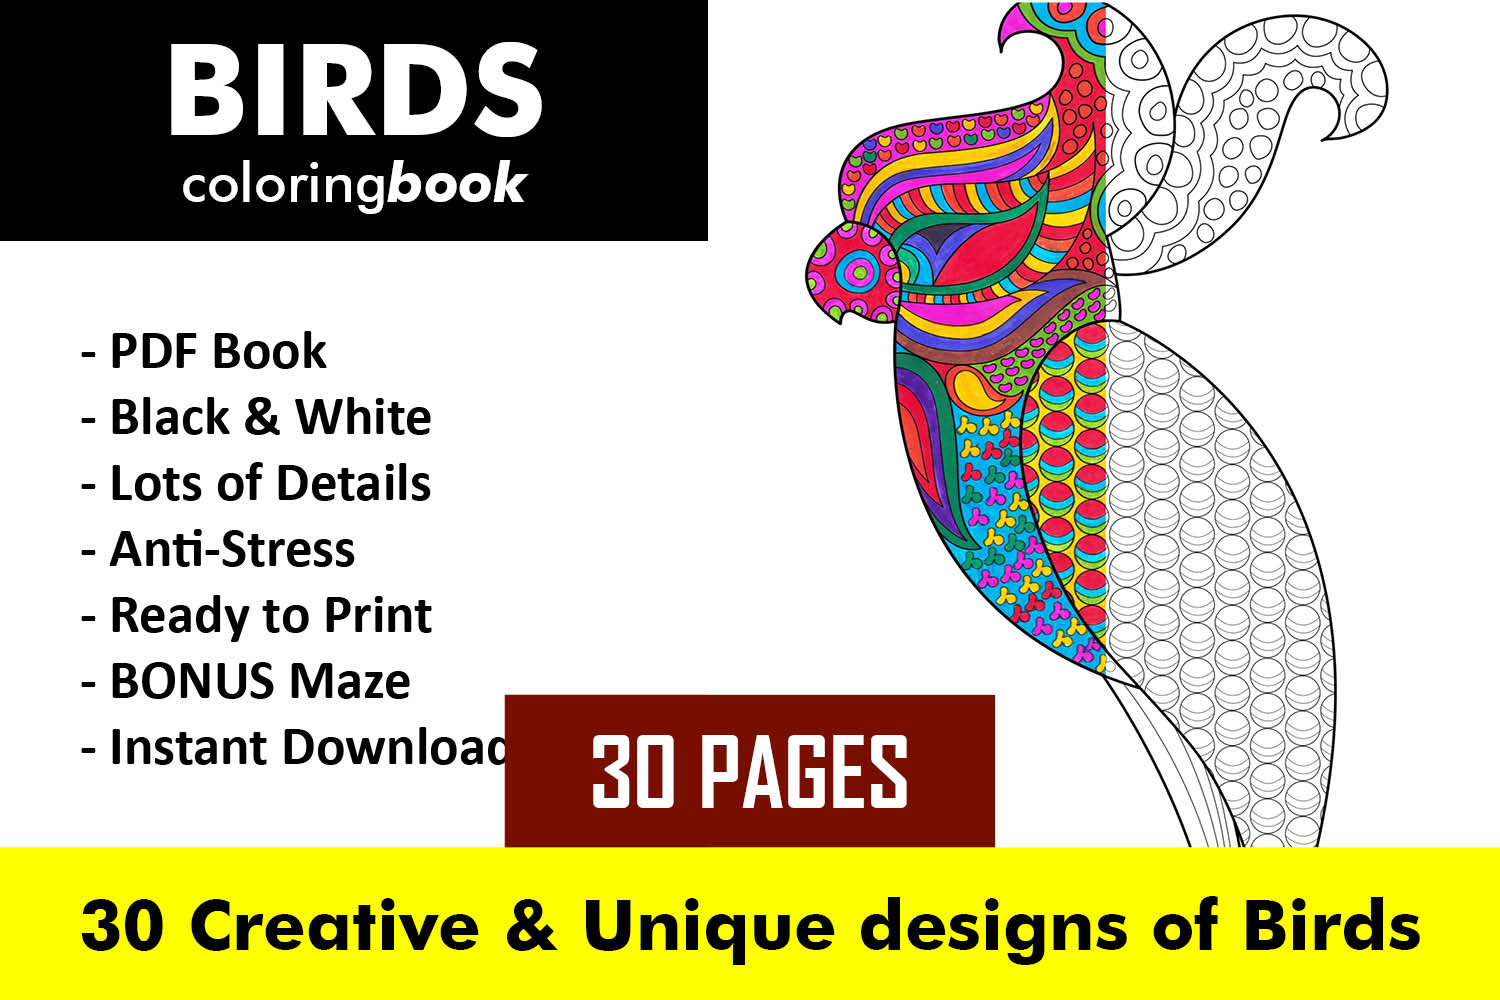 Download Free Birds Coloring Book 30 Unique Designs Graphic By for Cricut Explore, Silhouette and other cutting machines.